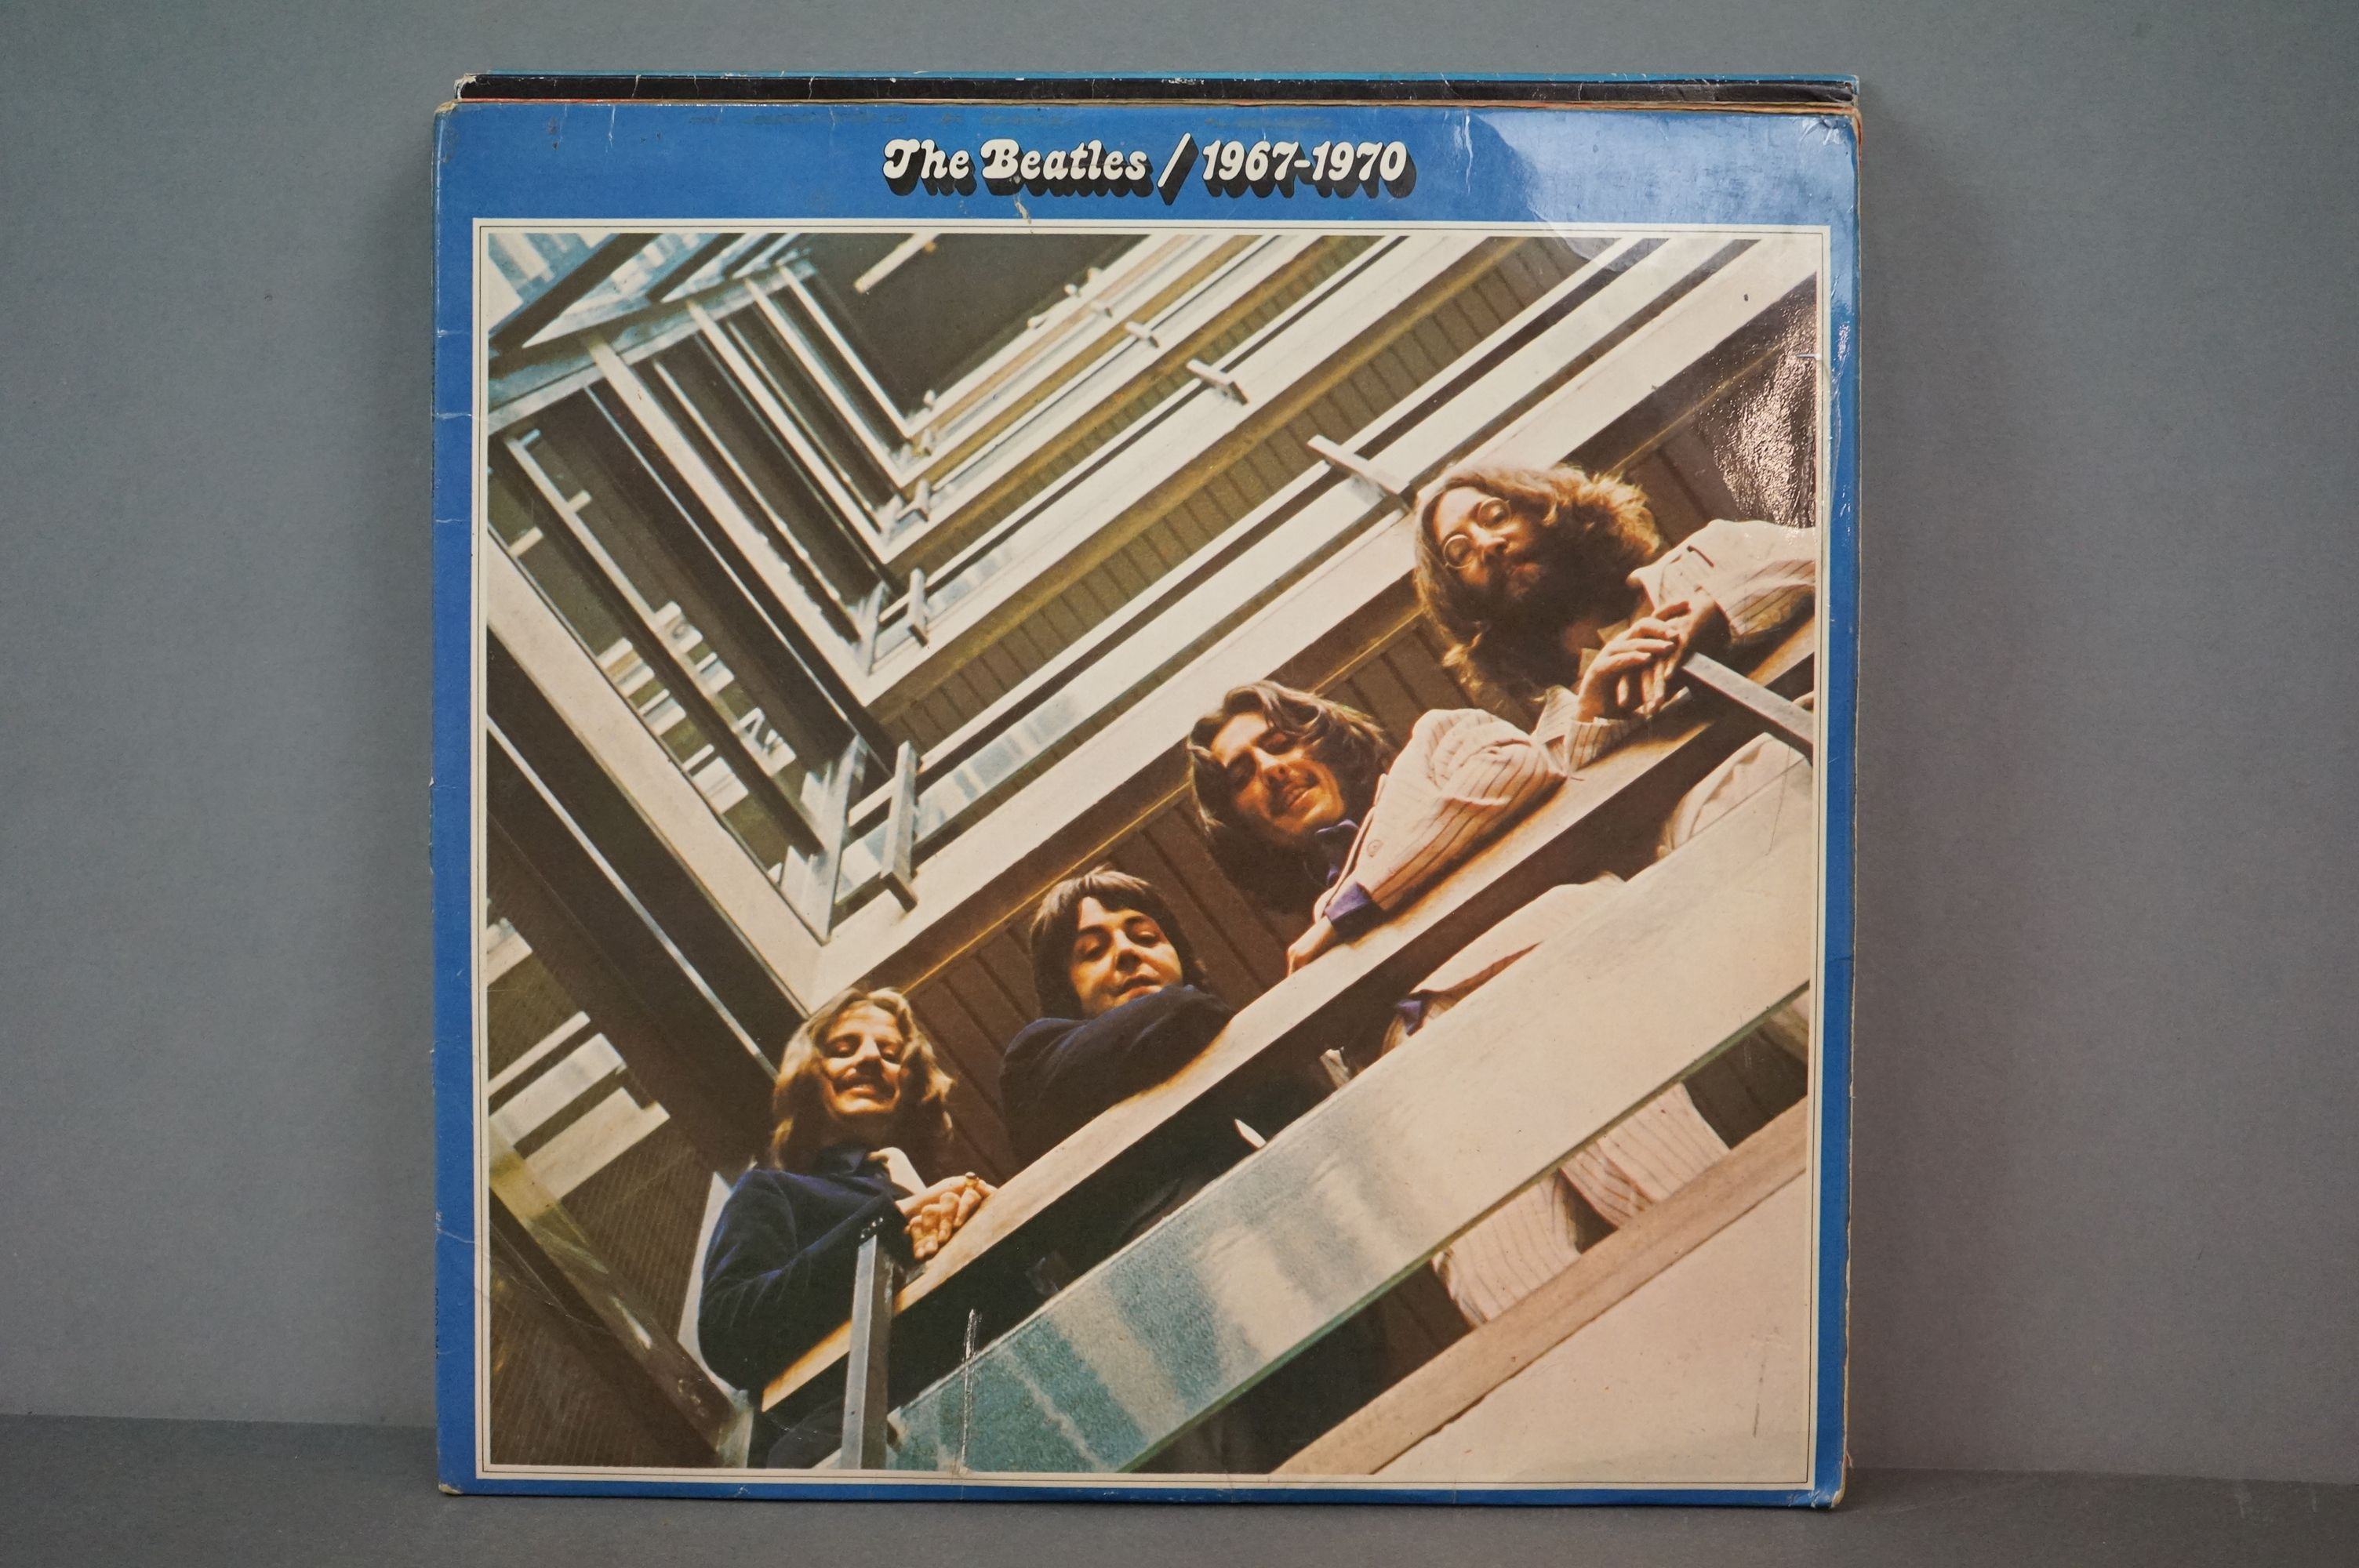 Vinyl - The Beatles and band members LPs to include 1962-1966 and 1967-1970 (black vinyl), Wings - Image 4 of 11